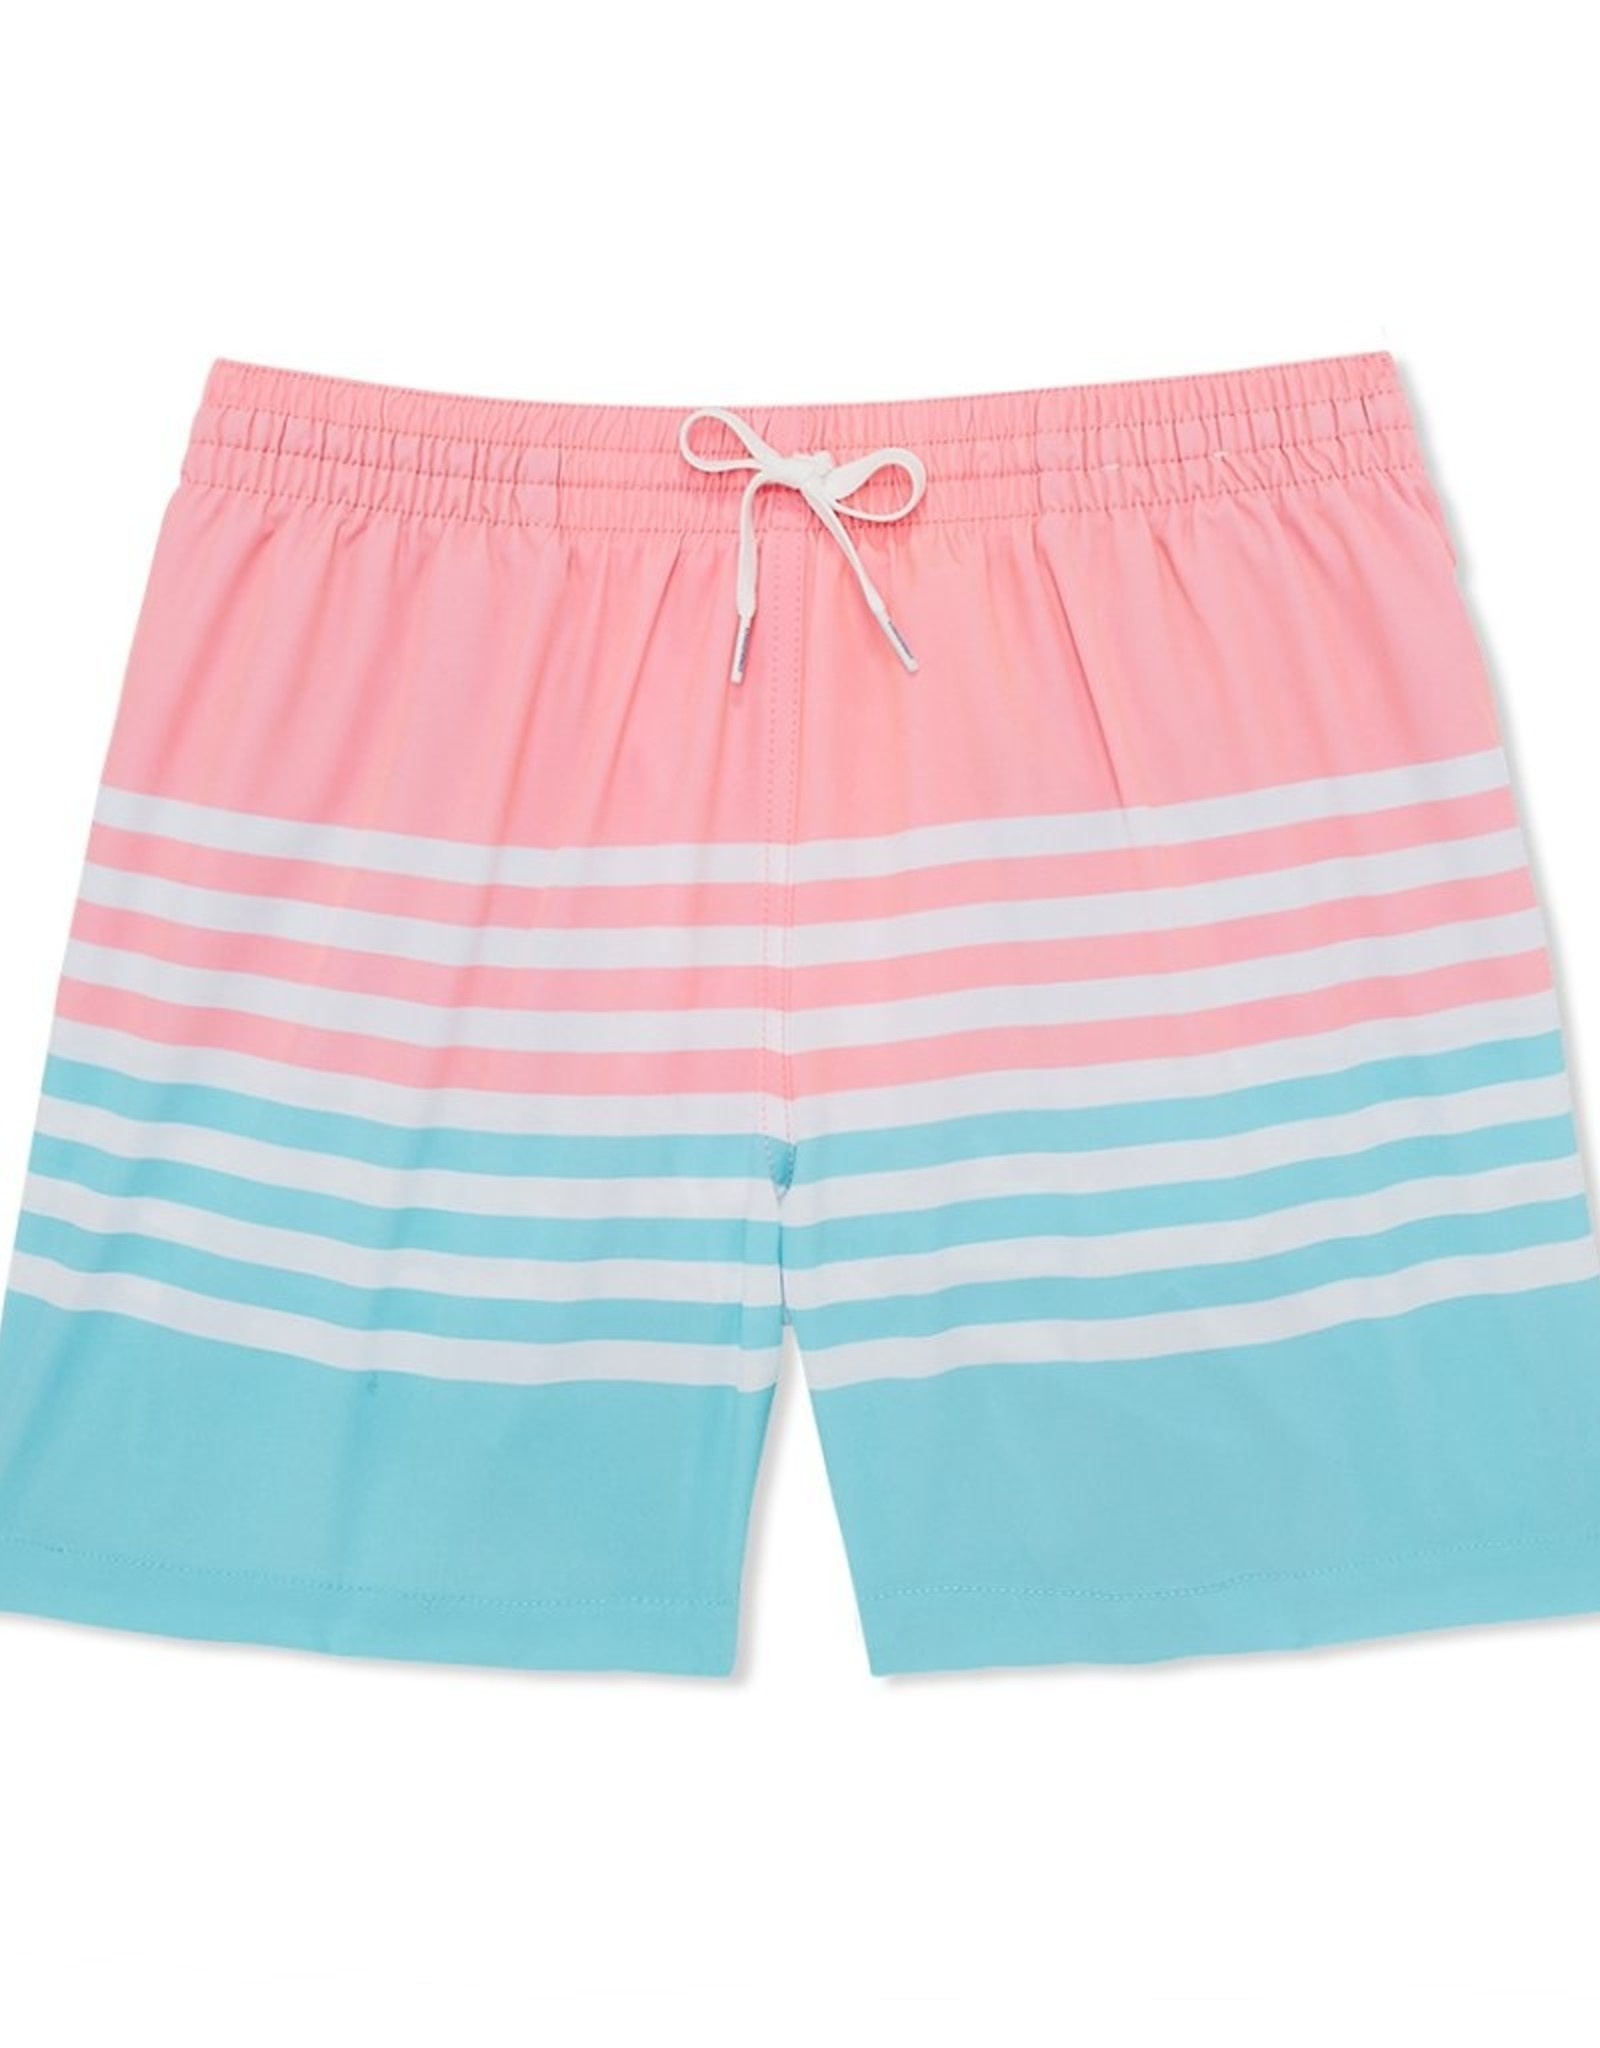 "Chubbies The On The Horizons 5.5"" (Stretch)"